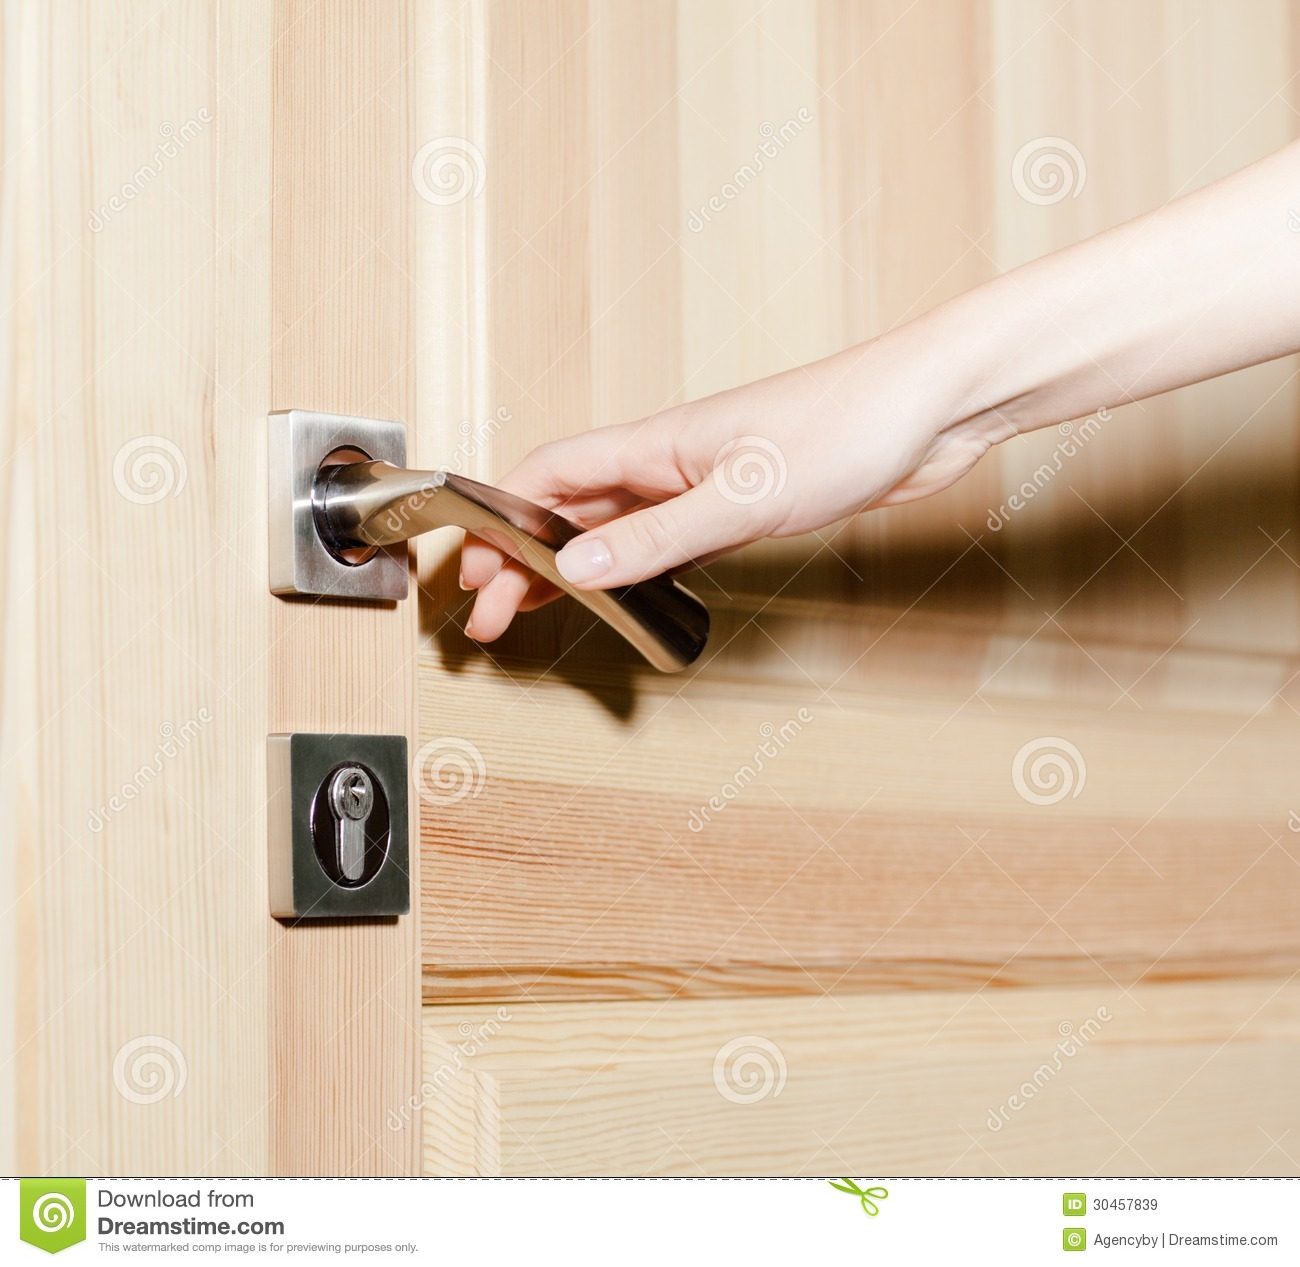 Hand opening the door & Hand opening the door stock image. Image of accessibility - 30457839